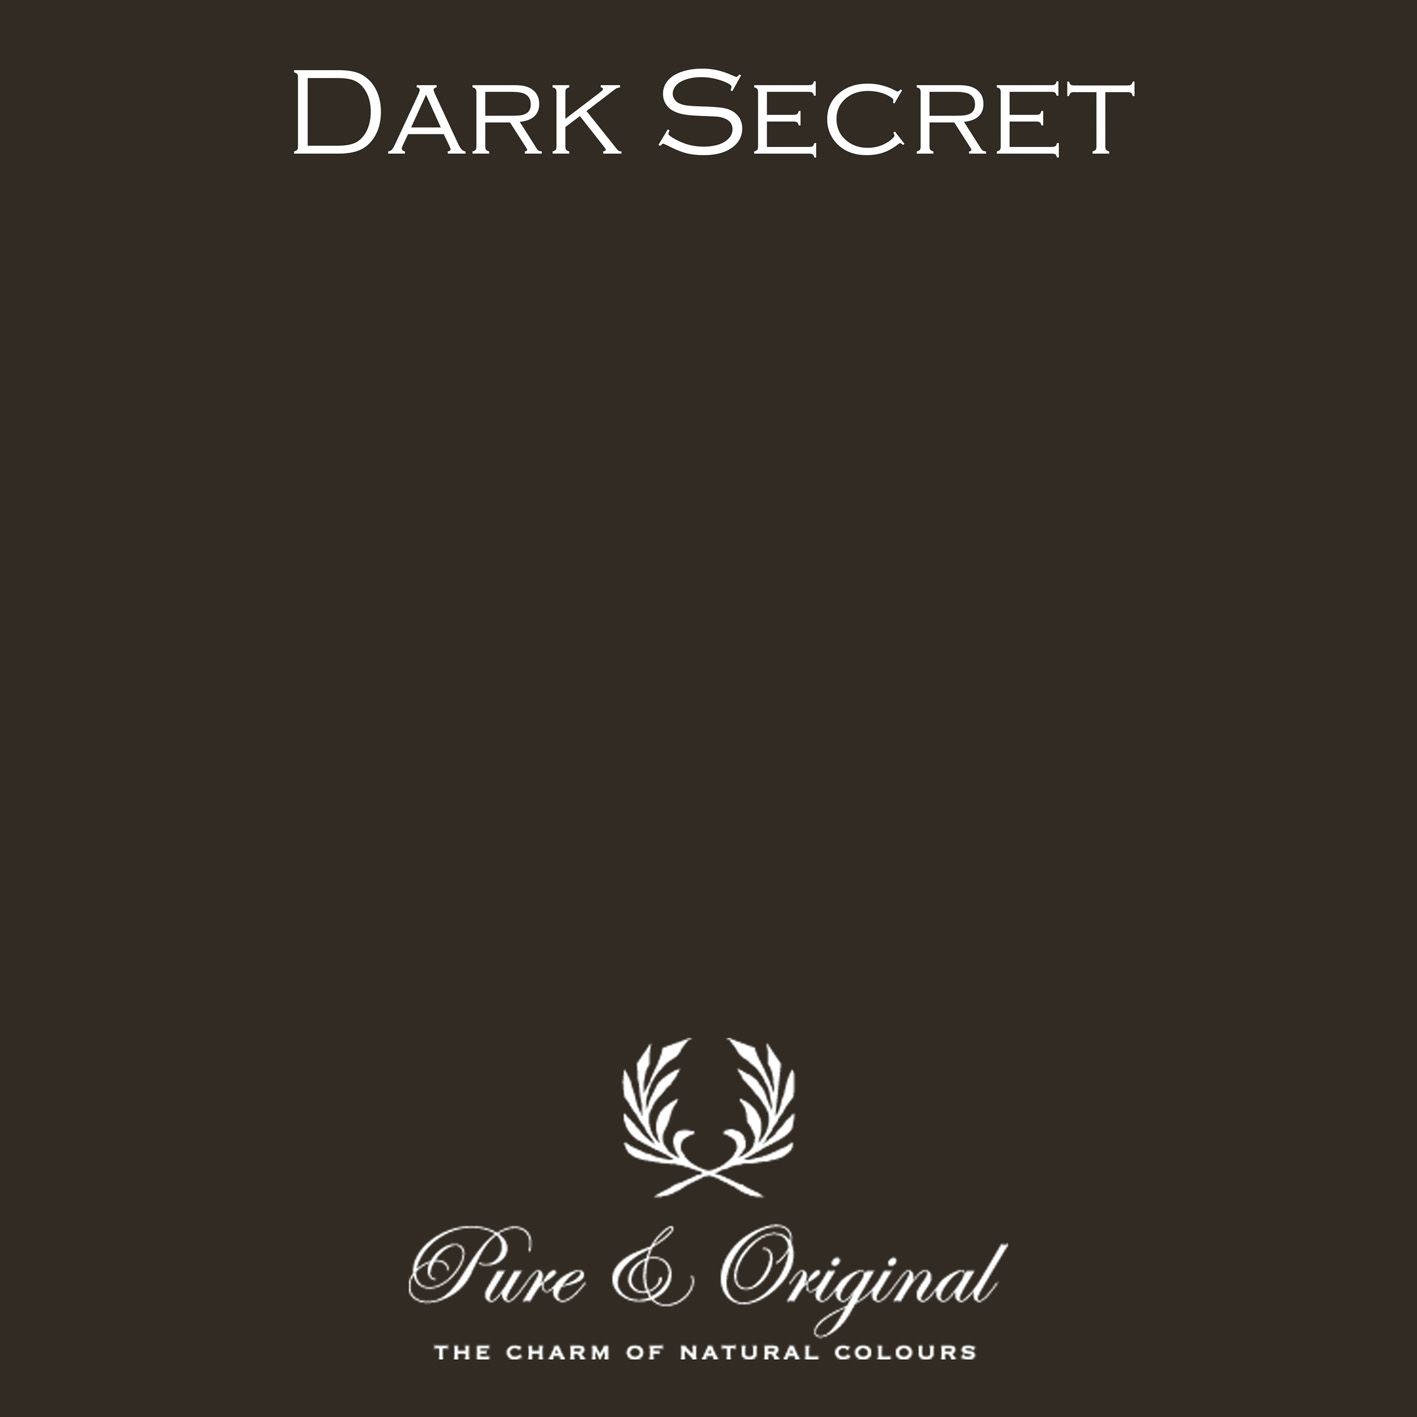 Dark Secret Pure & Original